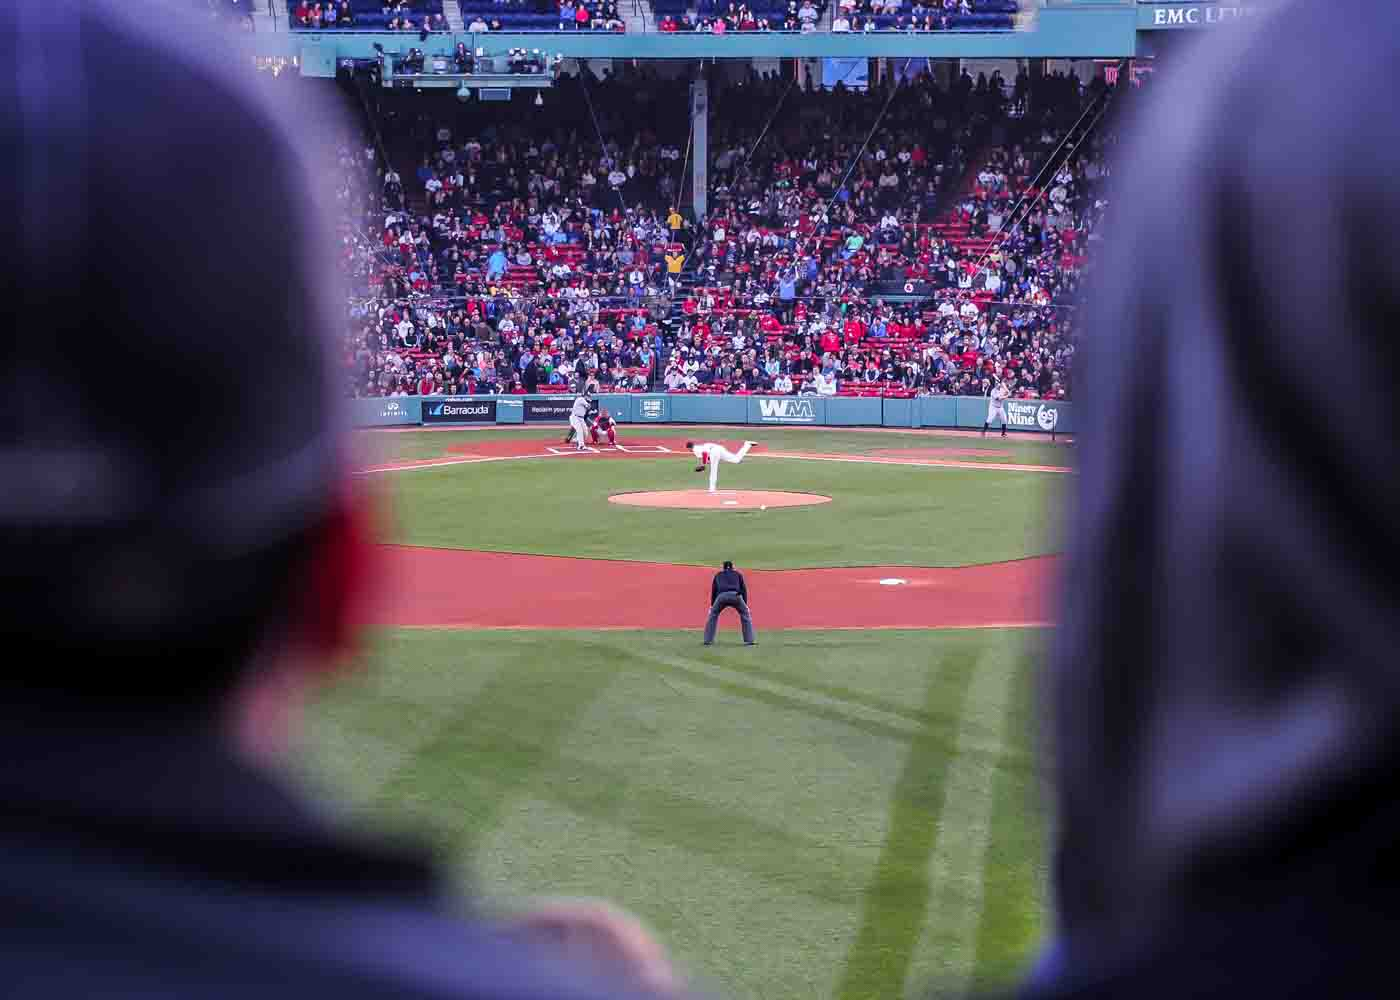 Fenway Park - Red Sox vs. the Yankees